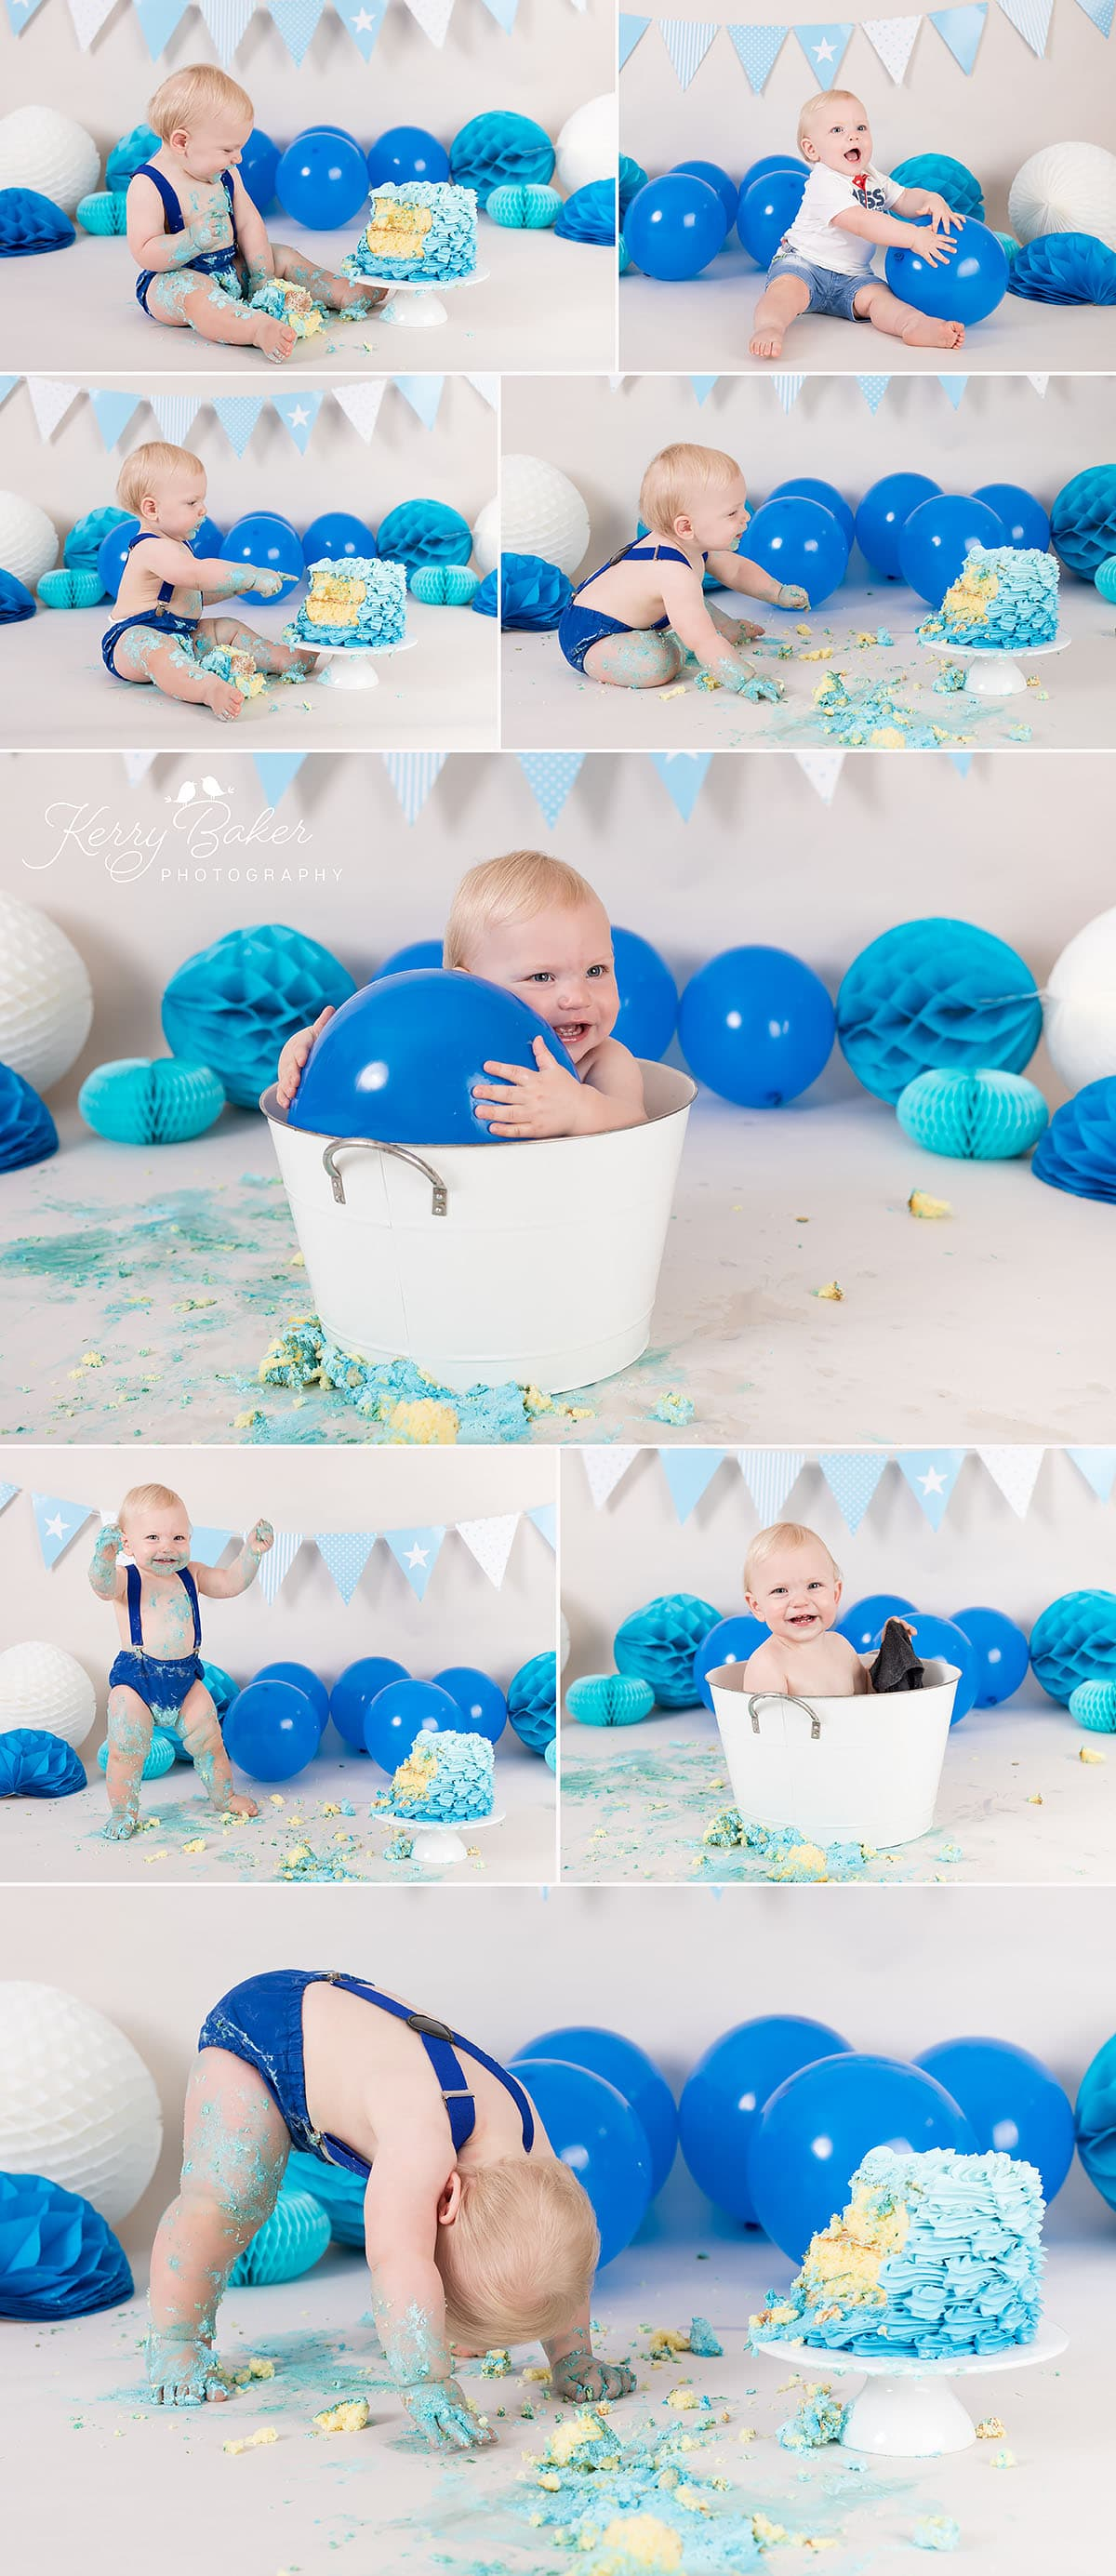 perth cake smash blue decorations 11 month old Hudson